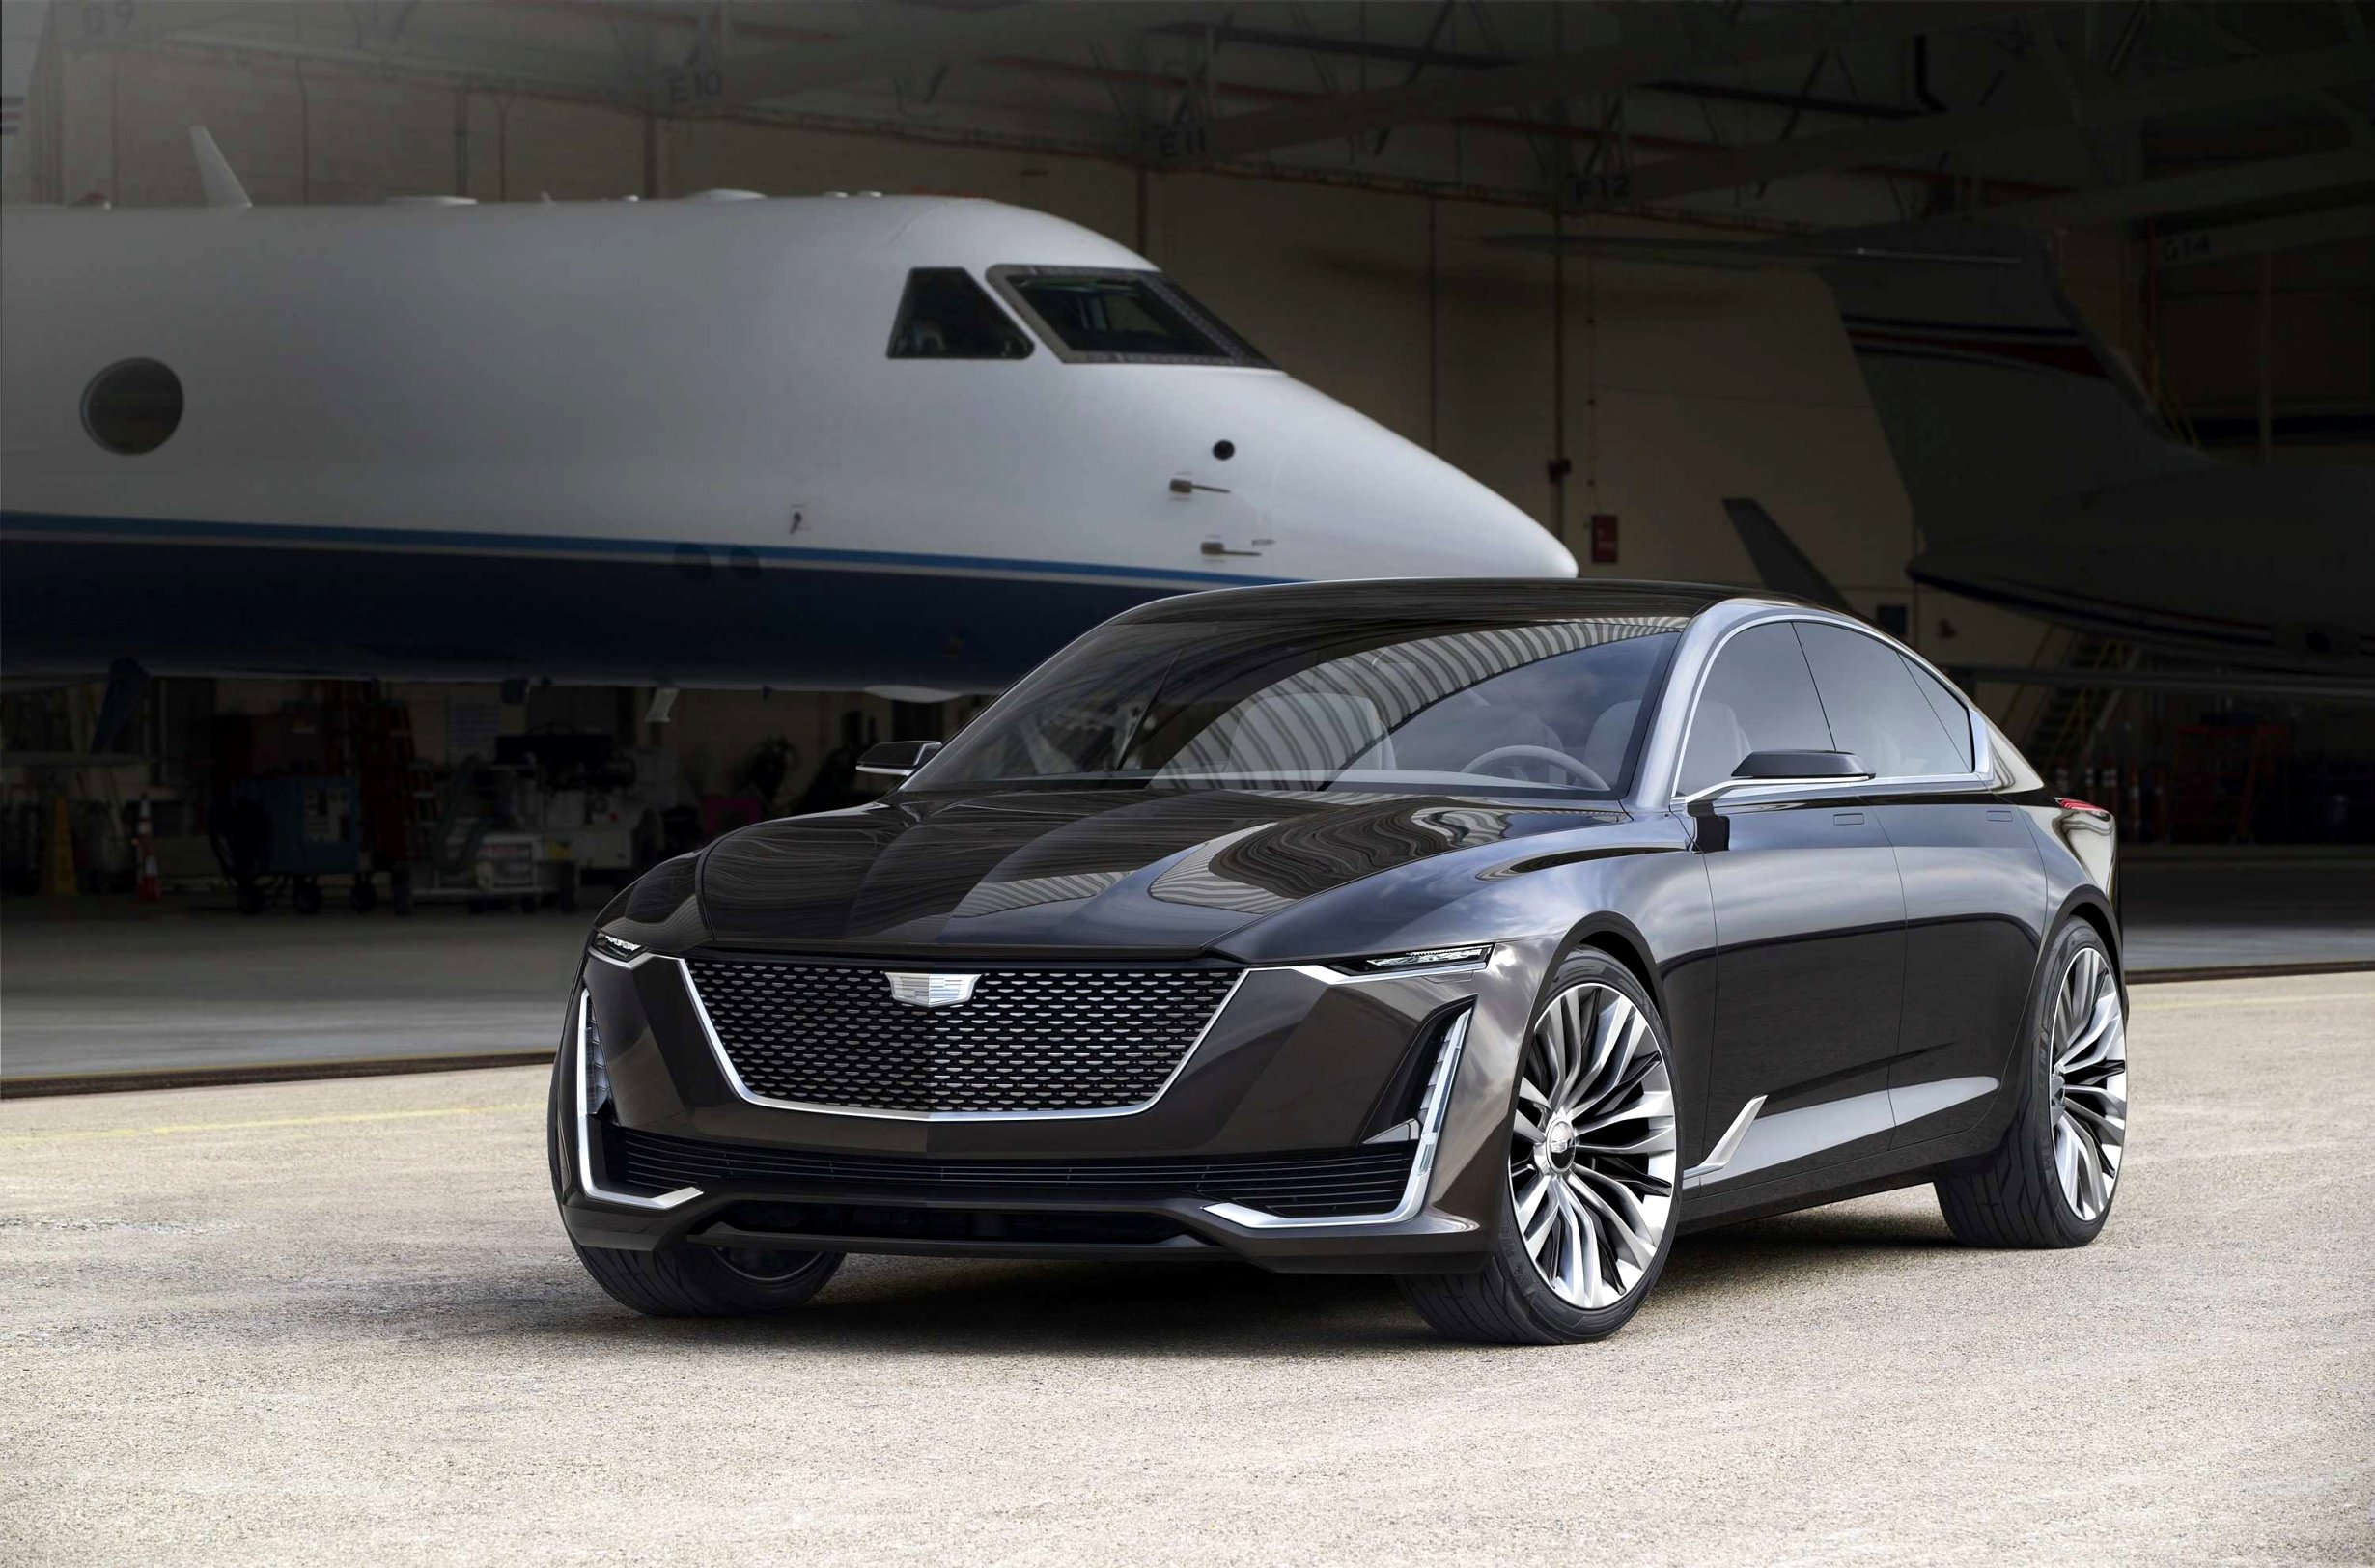 cadillac ats 2020 release date Images